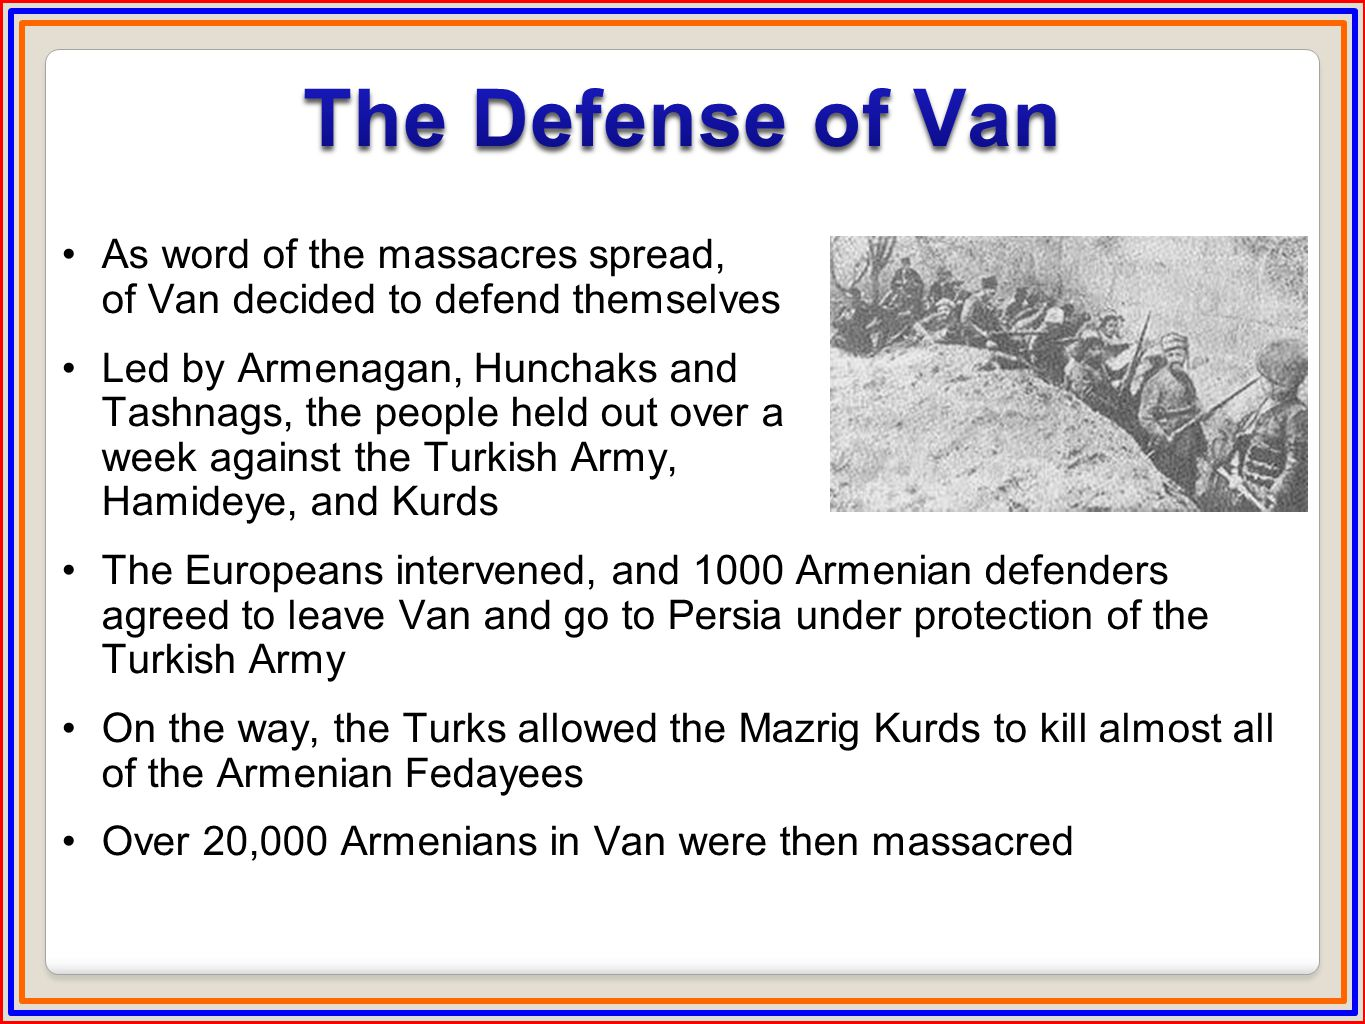 As word of the massacres spread, the Armenians of Van decided to defend themselves Led by Armenagan, Hunchaks and Tashnags, the people held out over a week against the Turkish Army, Hamideye, and Kurds The Europeans intervened, and 1000 Armenian defenders agreed to leave Van and go to Persia under protection of the Turkish Army On the way, the Turks allowed the Mazrig Kurds to kill almost all of the Armenian Fedayees Over 20,000 Armenians in Van were then massacred